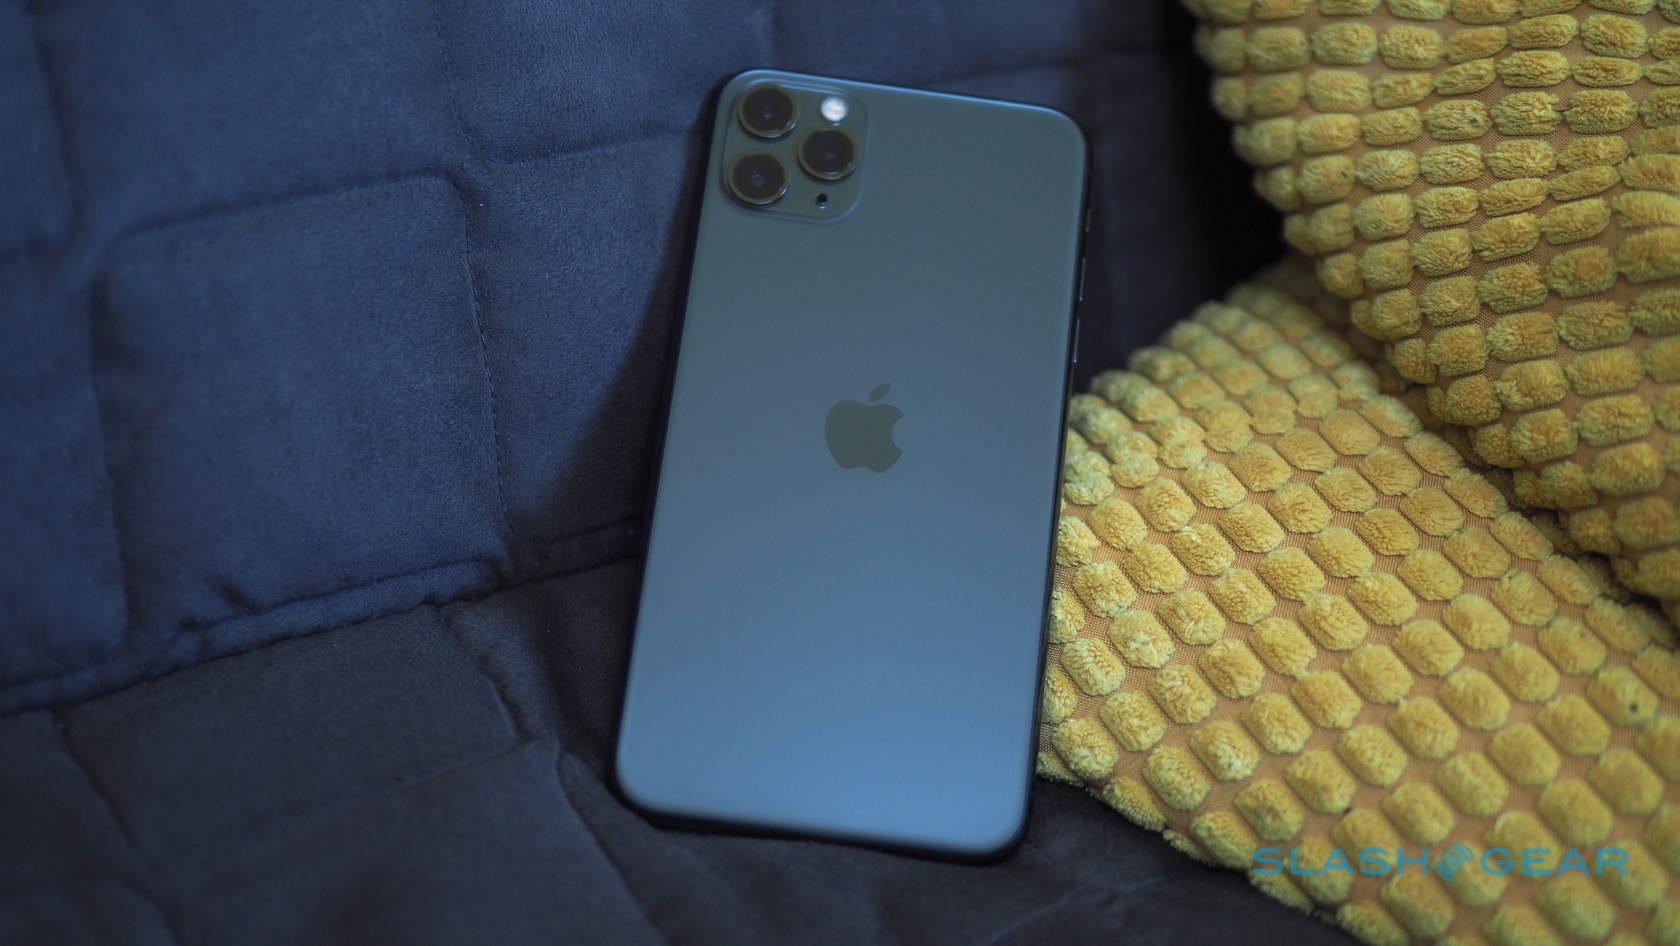 The Midnight Green Iphone 11 Pro Is Living Up To